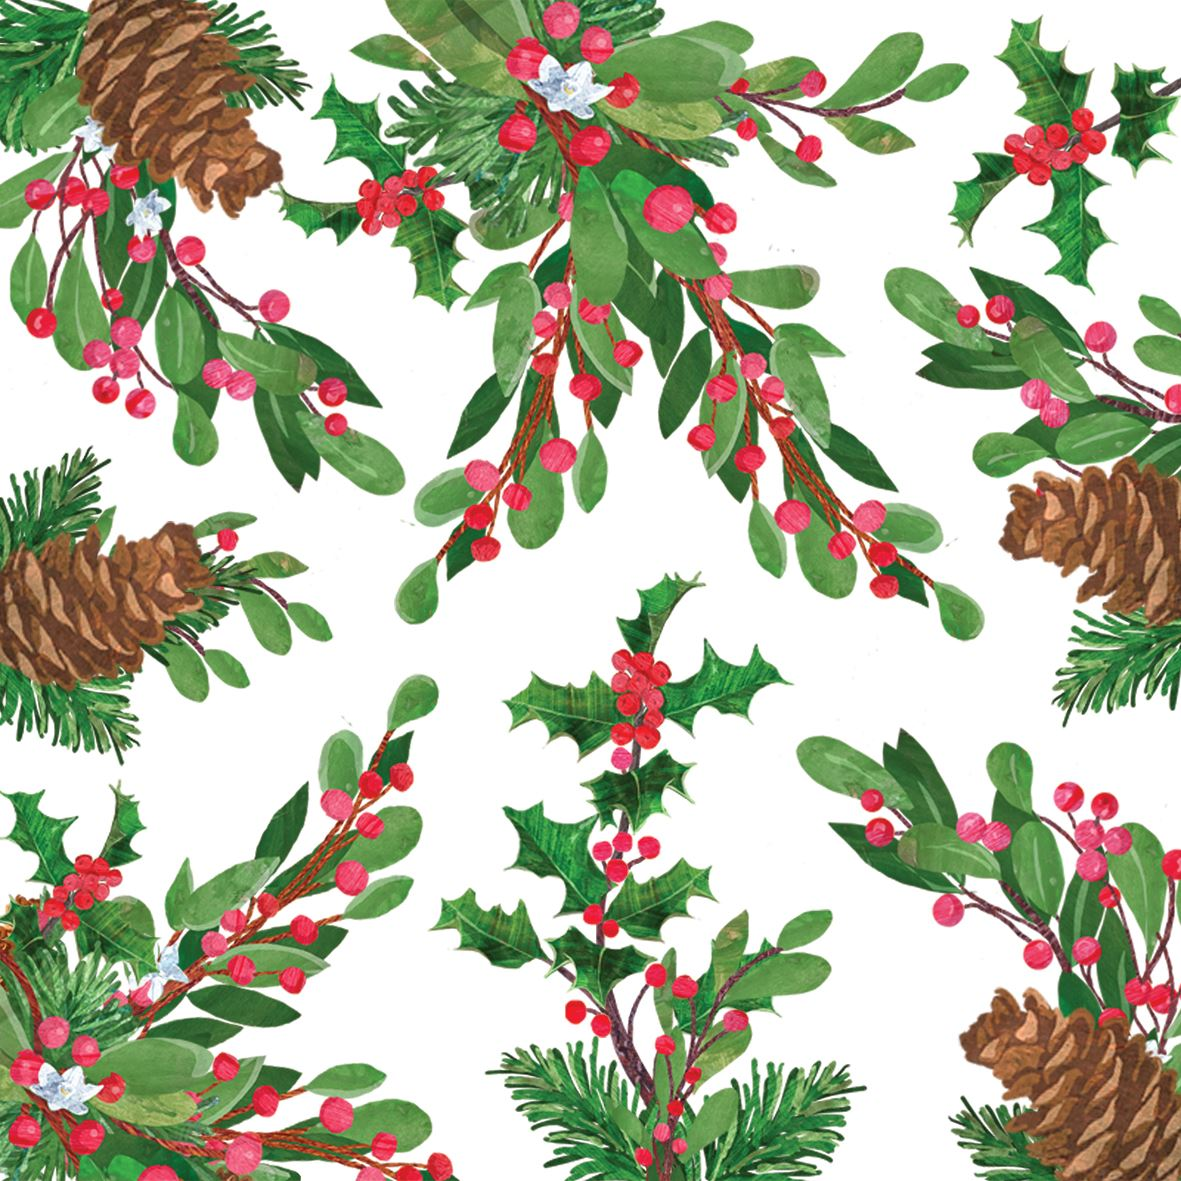 Reindeer//Green Border 20 Pack of 3 Ply Christmas Paper Napkins Serviettes